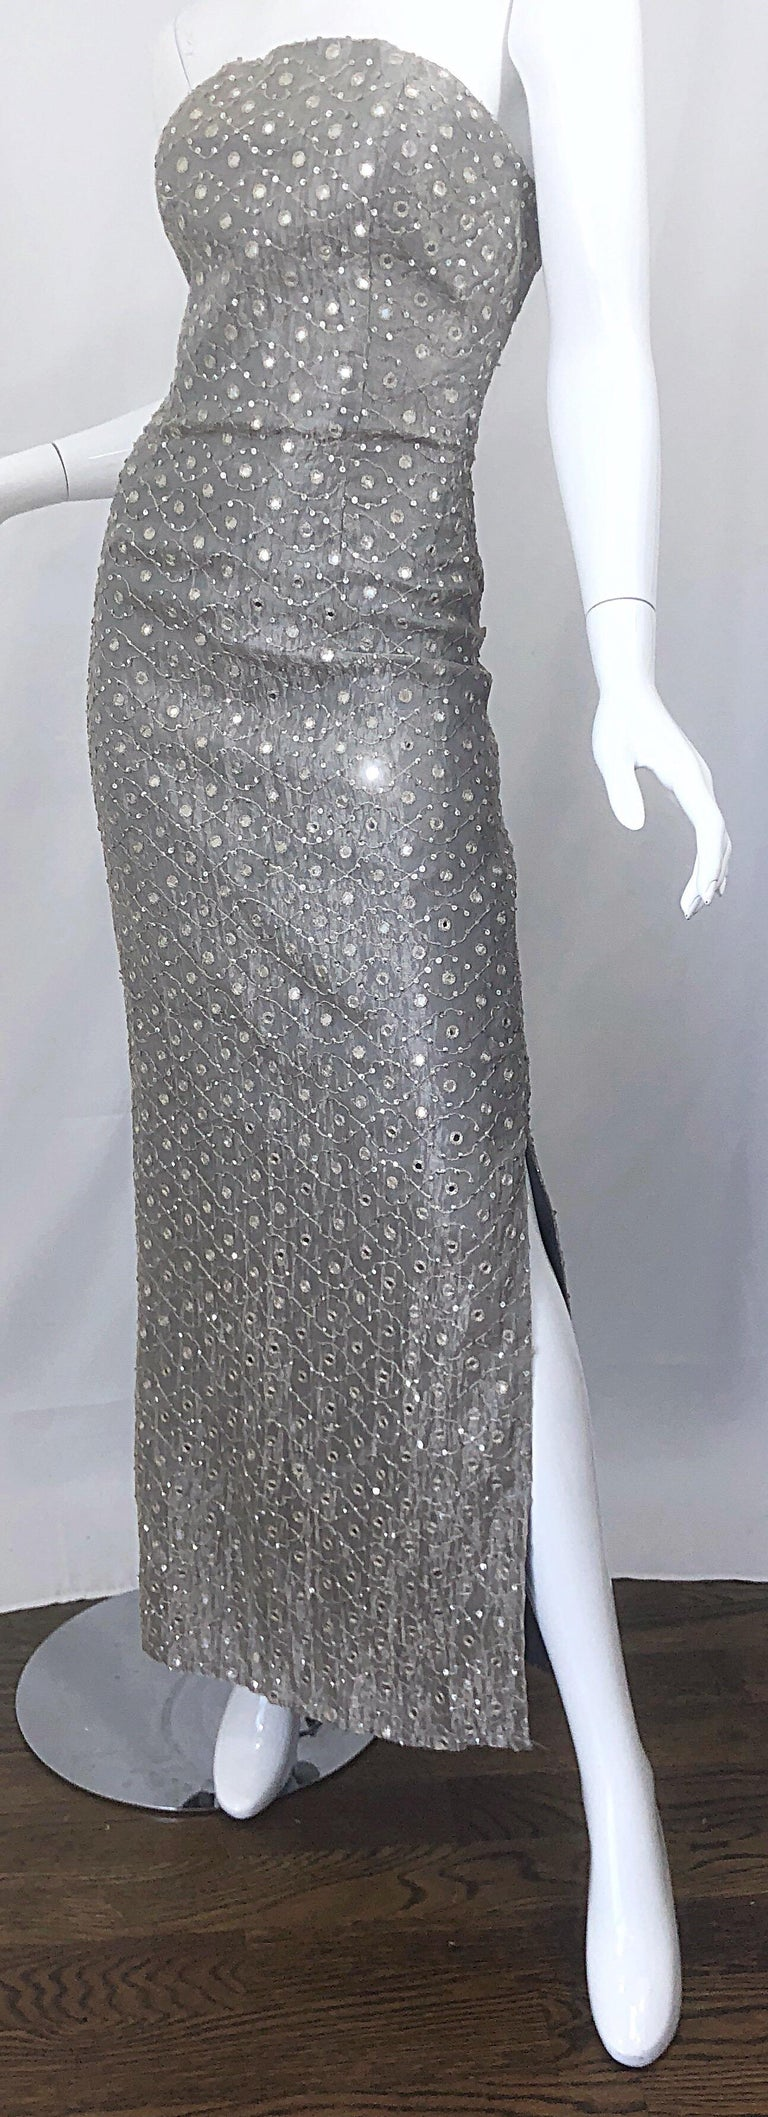 1990s Silver Grey Mirrored Sequins Size 6 Strapless Silk Vintage Gown Dress For Sale 1